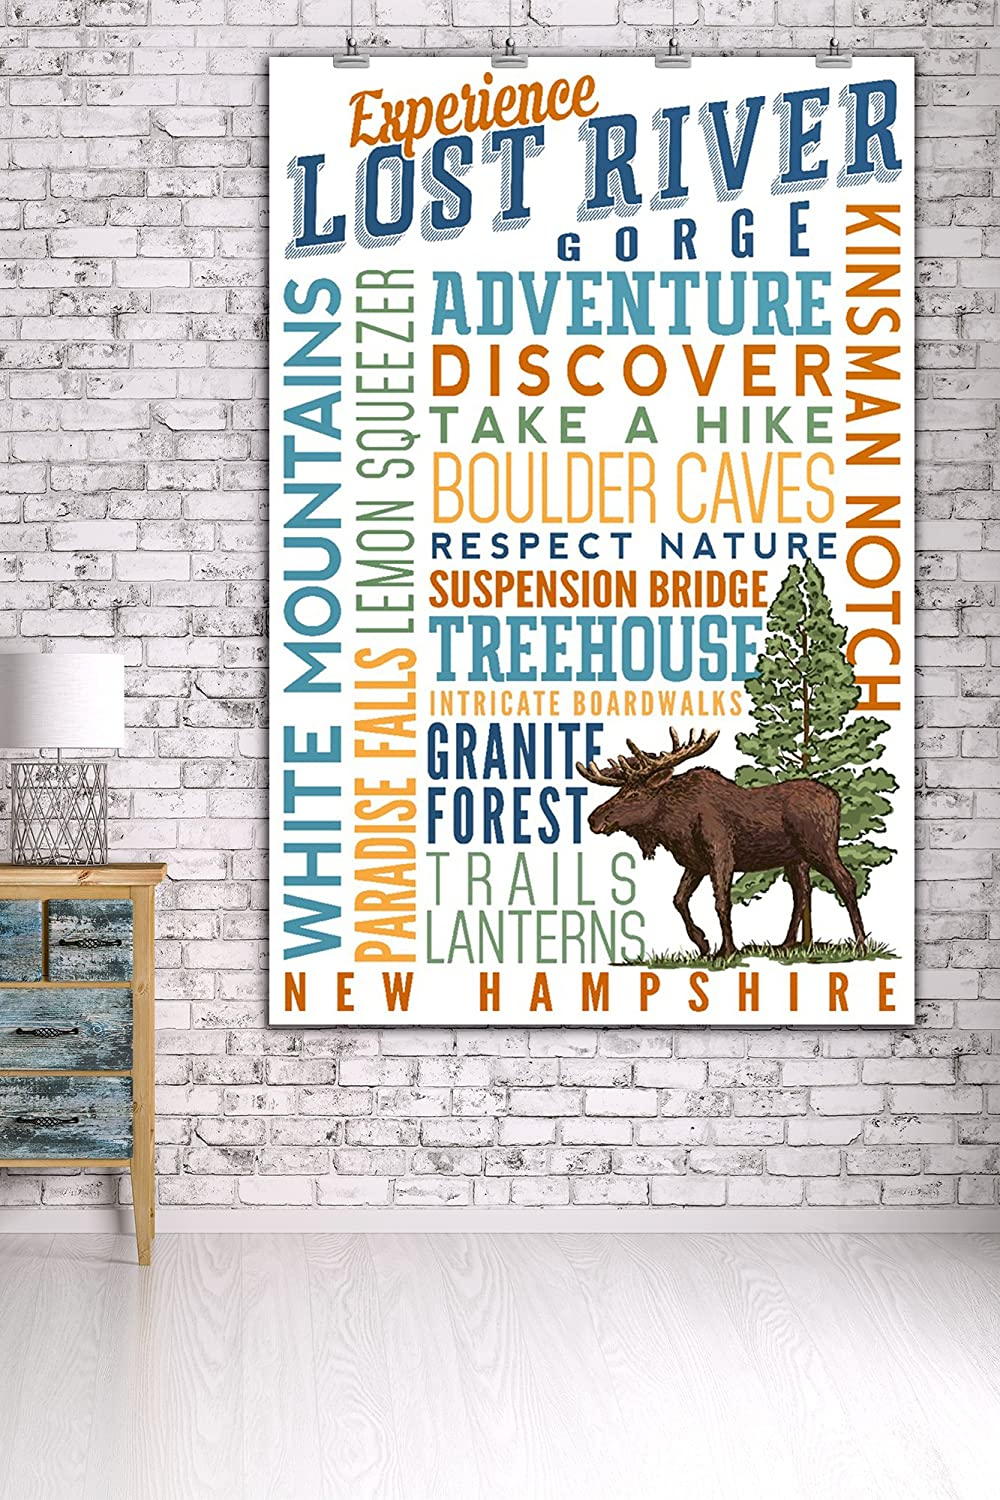 Lost River Gorge New Hampshire Experience Lost River Gorge Typography Press 86077 16x24 SIGNED Print Master Art Print - Wall Decor Poster